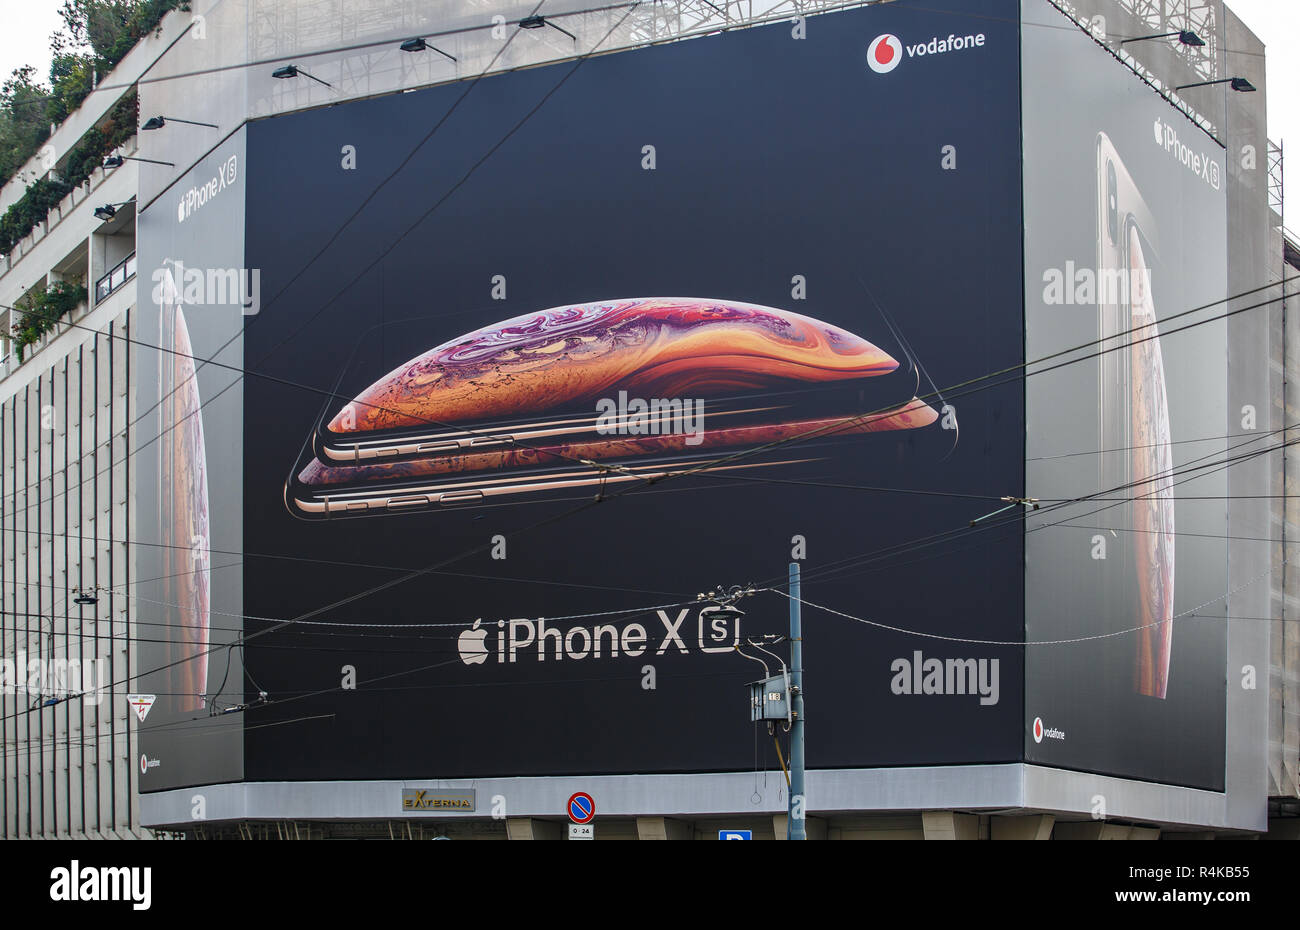 MILANO,ITALY-10 OCTOBER,2018: New Apple Iphone XS advertisement banner on Apple Store in Italian city street.Luxury smart phone Ten S model Stock Photo